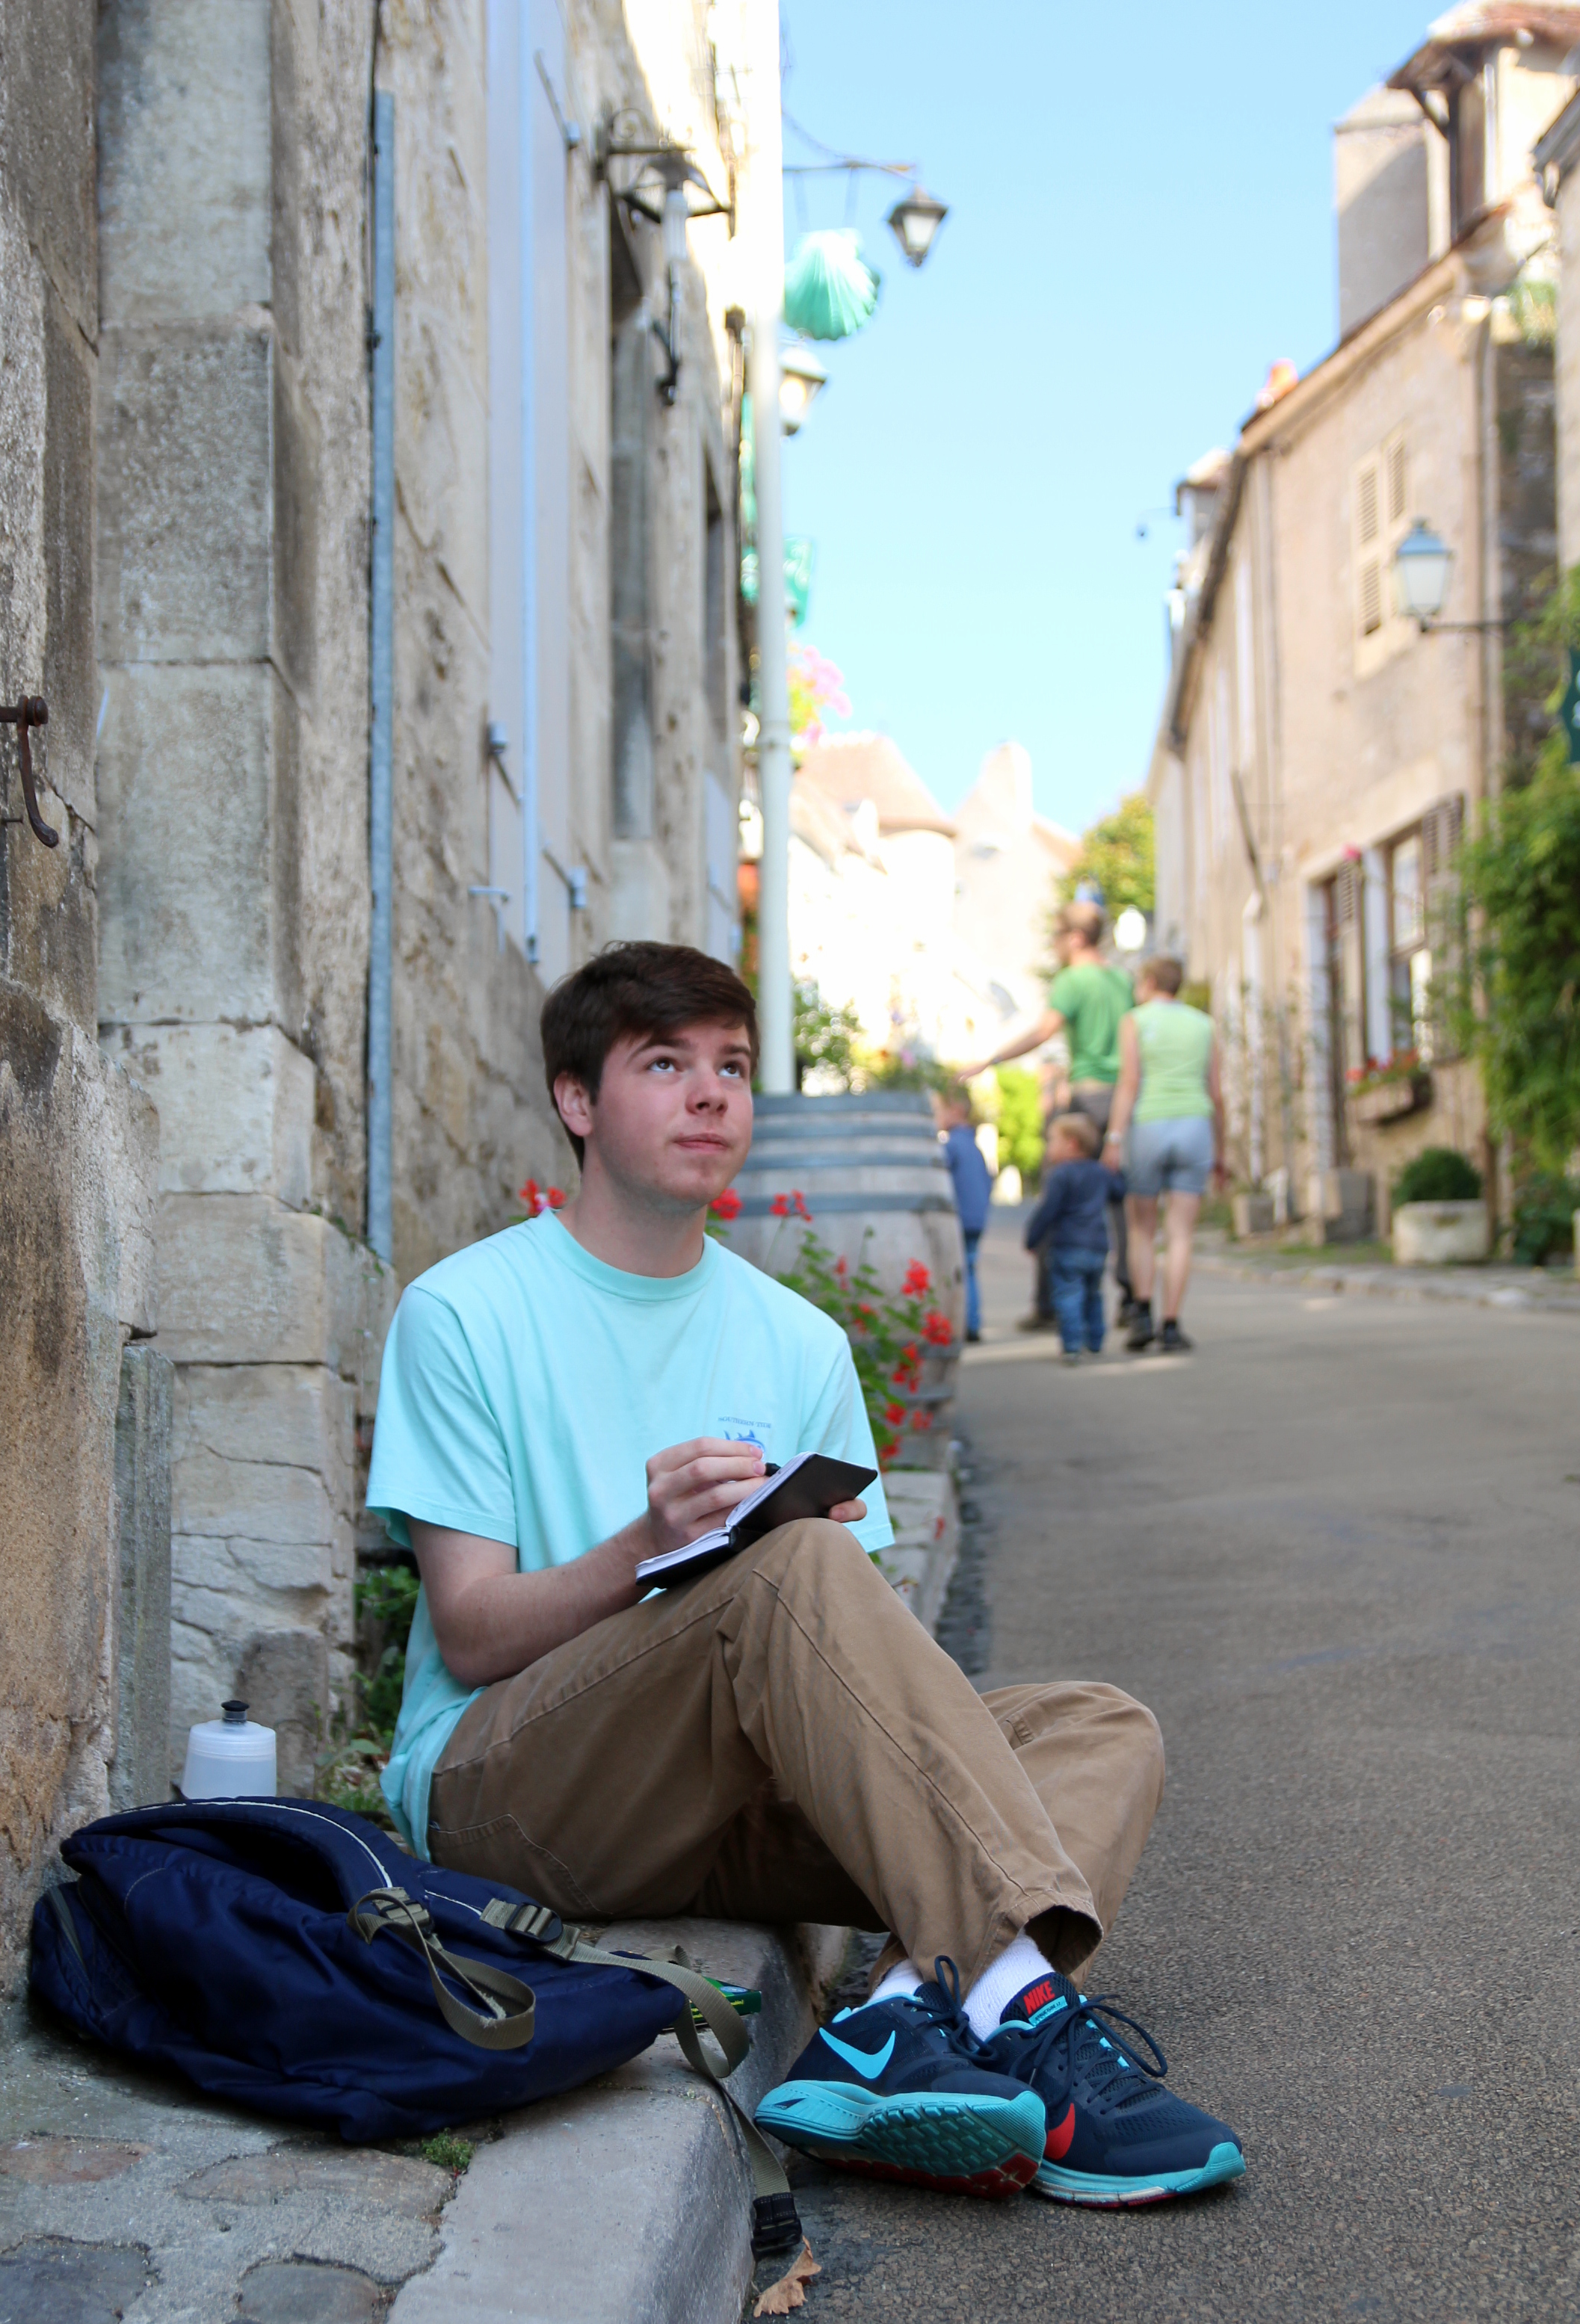 A student sits on the curb of a European street sketching in his notebook